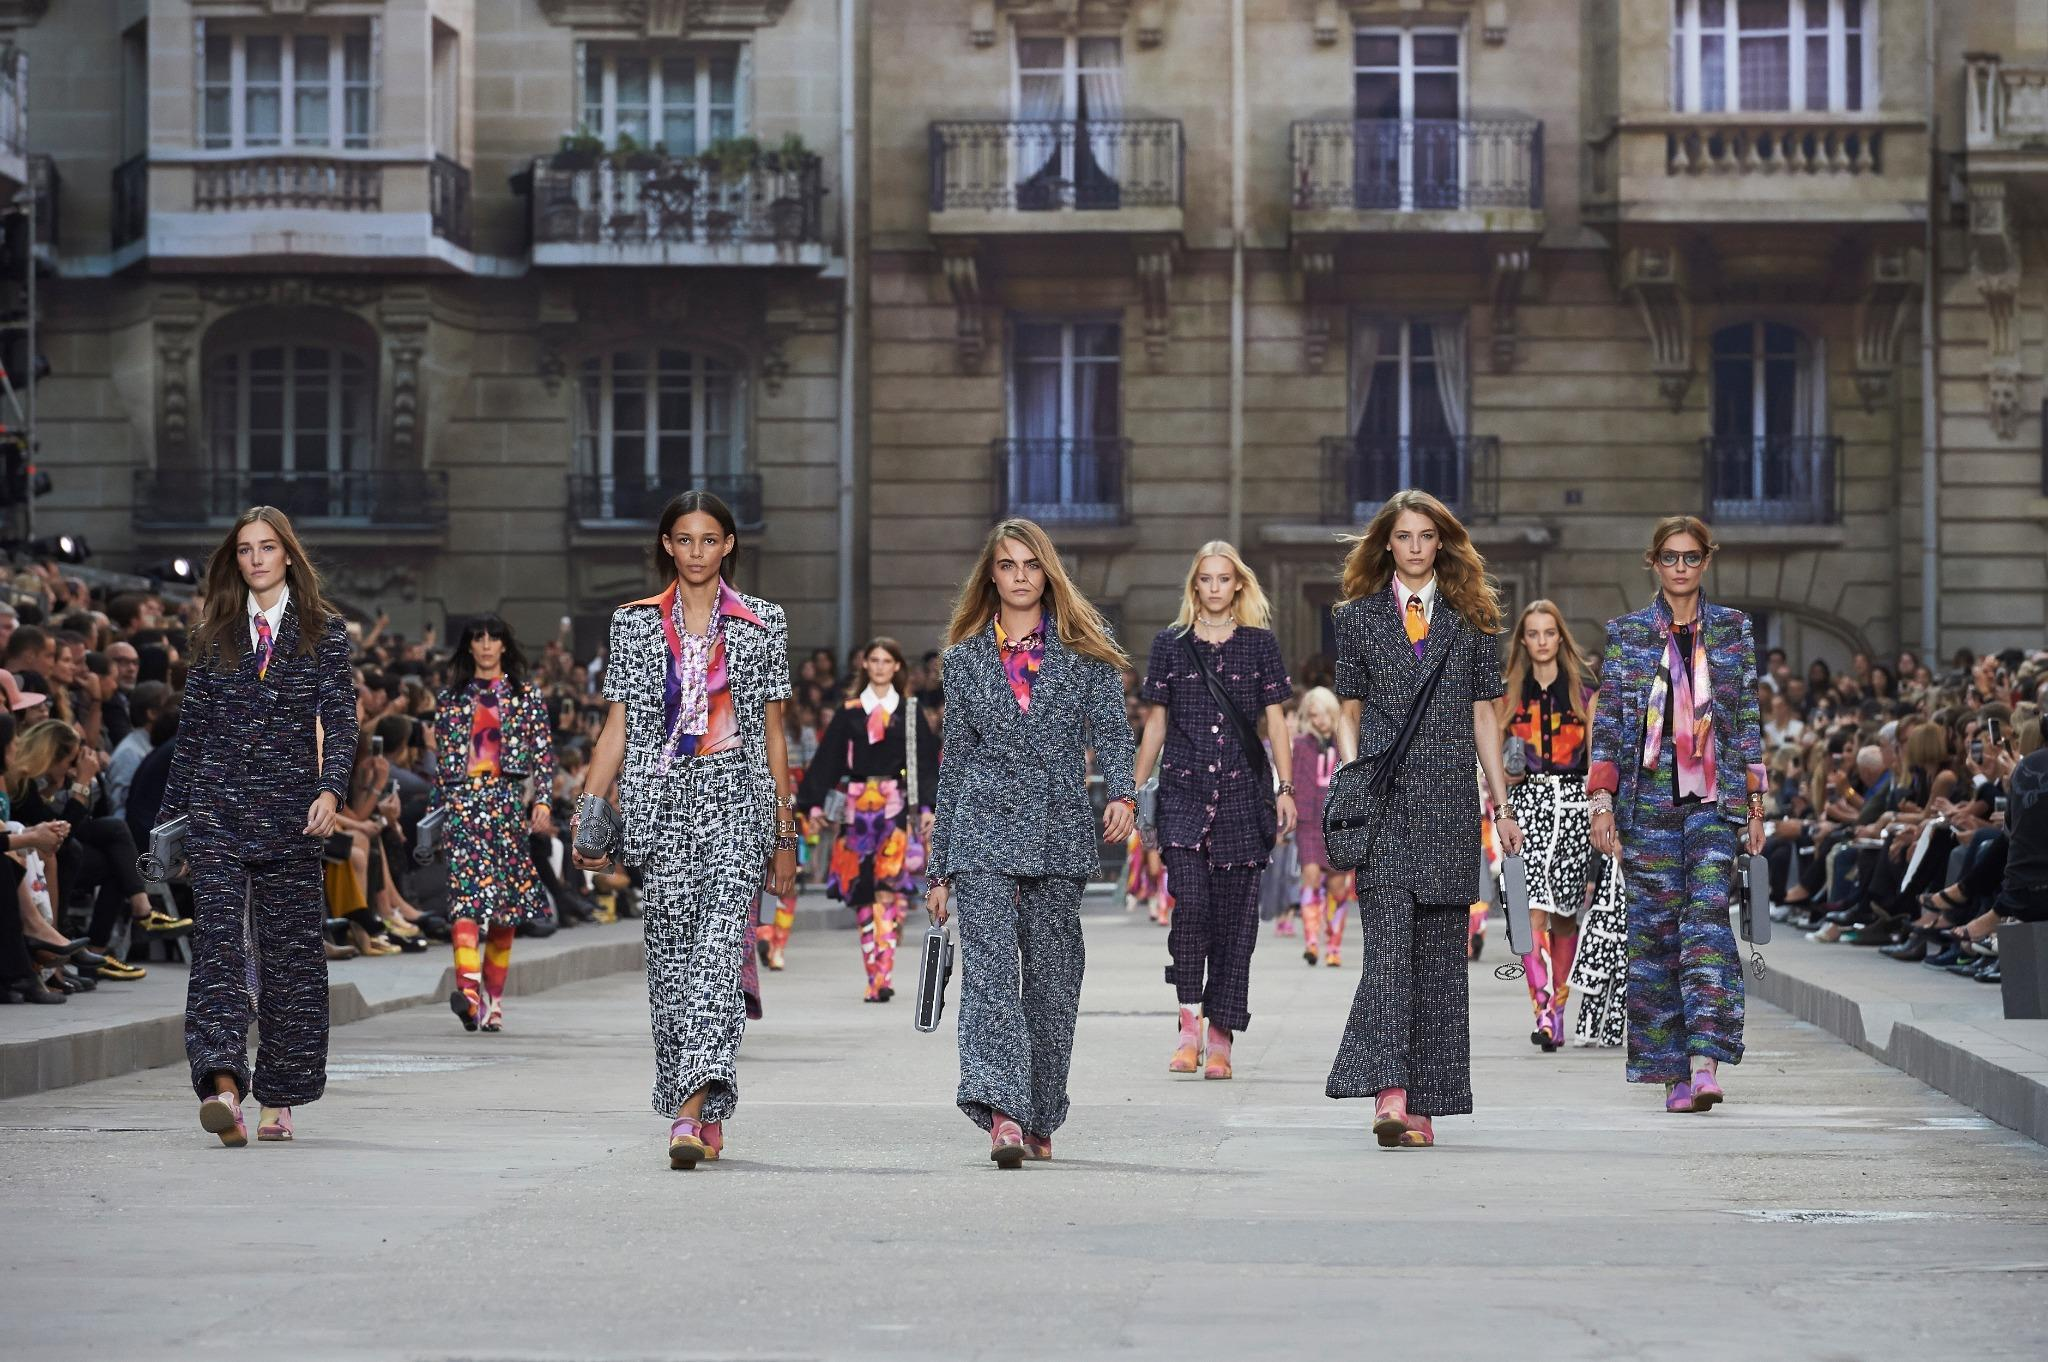 The runway at today's Spring-Summer 2015 RTW show in Paris. #boulevardchanel More photos on http://t.co/PgrjASyr5w http://t.co/Yfk8yIfwB4